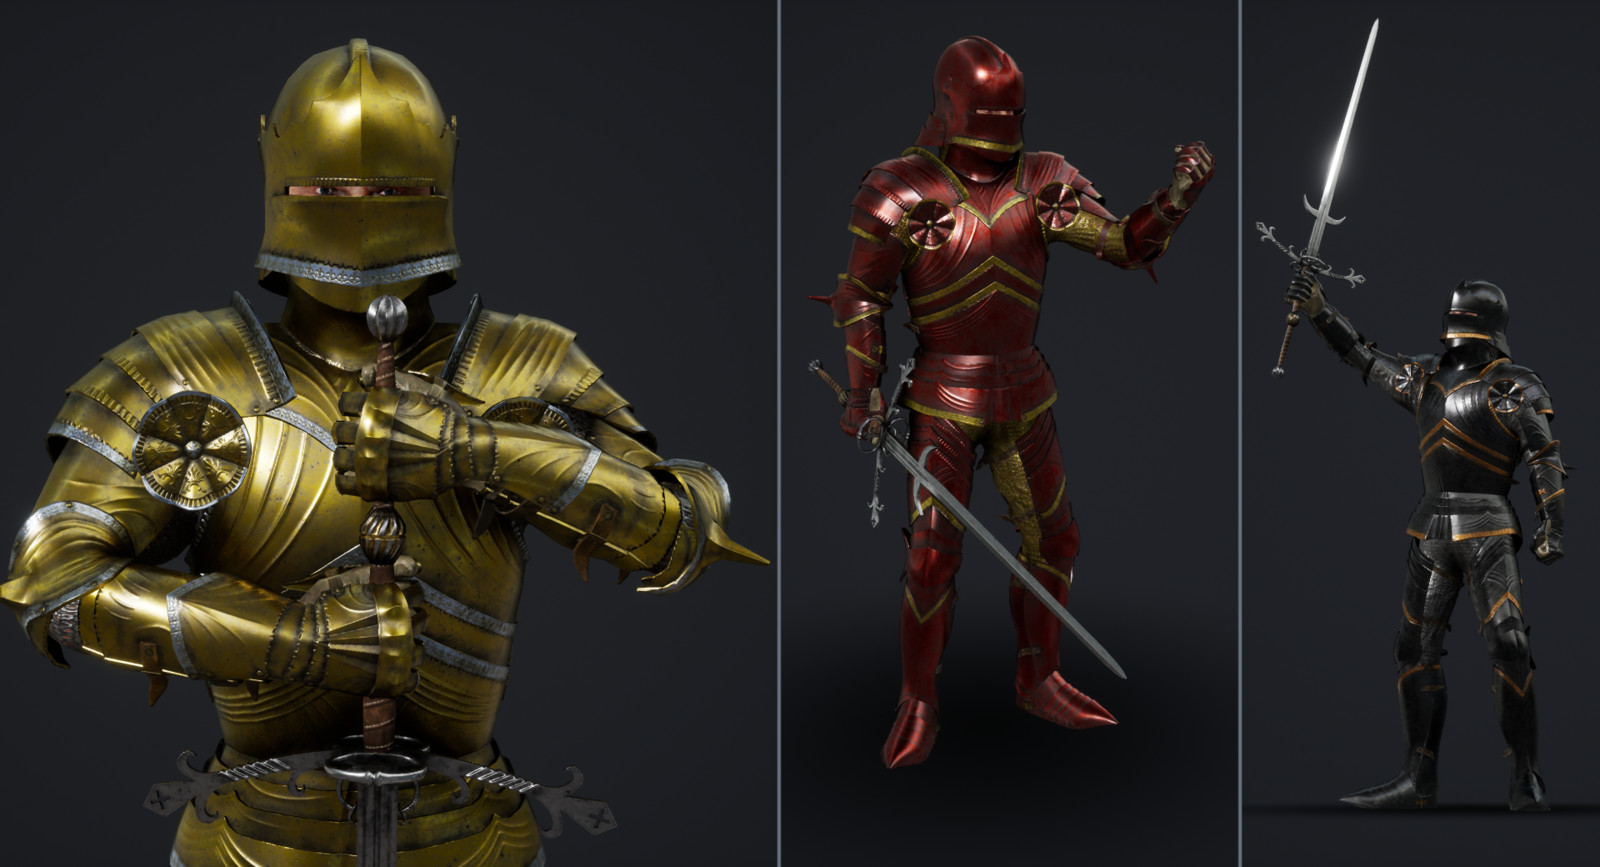 Colour Variants (not historically accurate, rather displaying different colour combinations)